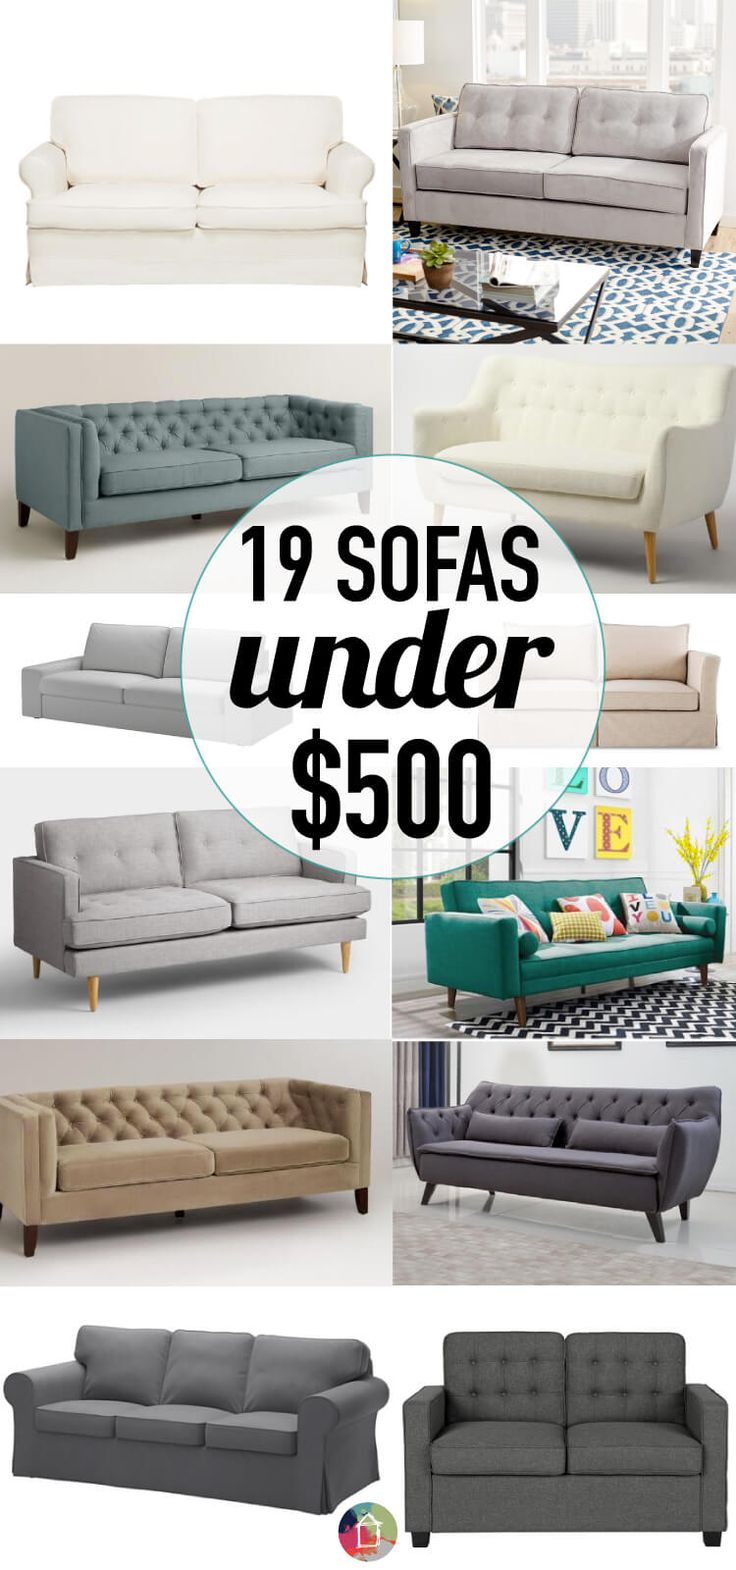 Sofa Deals That Don t Skimp on Style. Best 25  Sofa deals ideas on Pinterest   DIY furniture upholstery